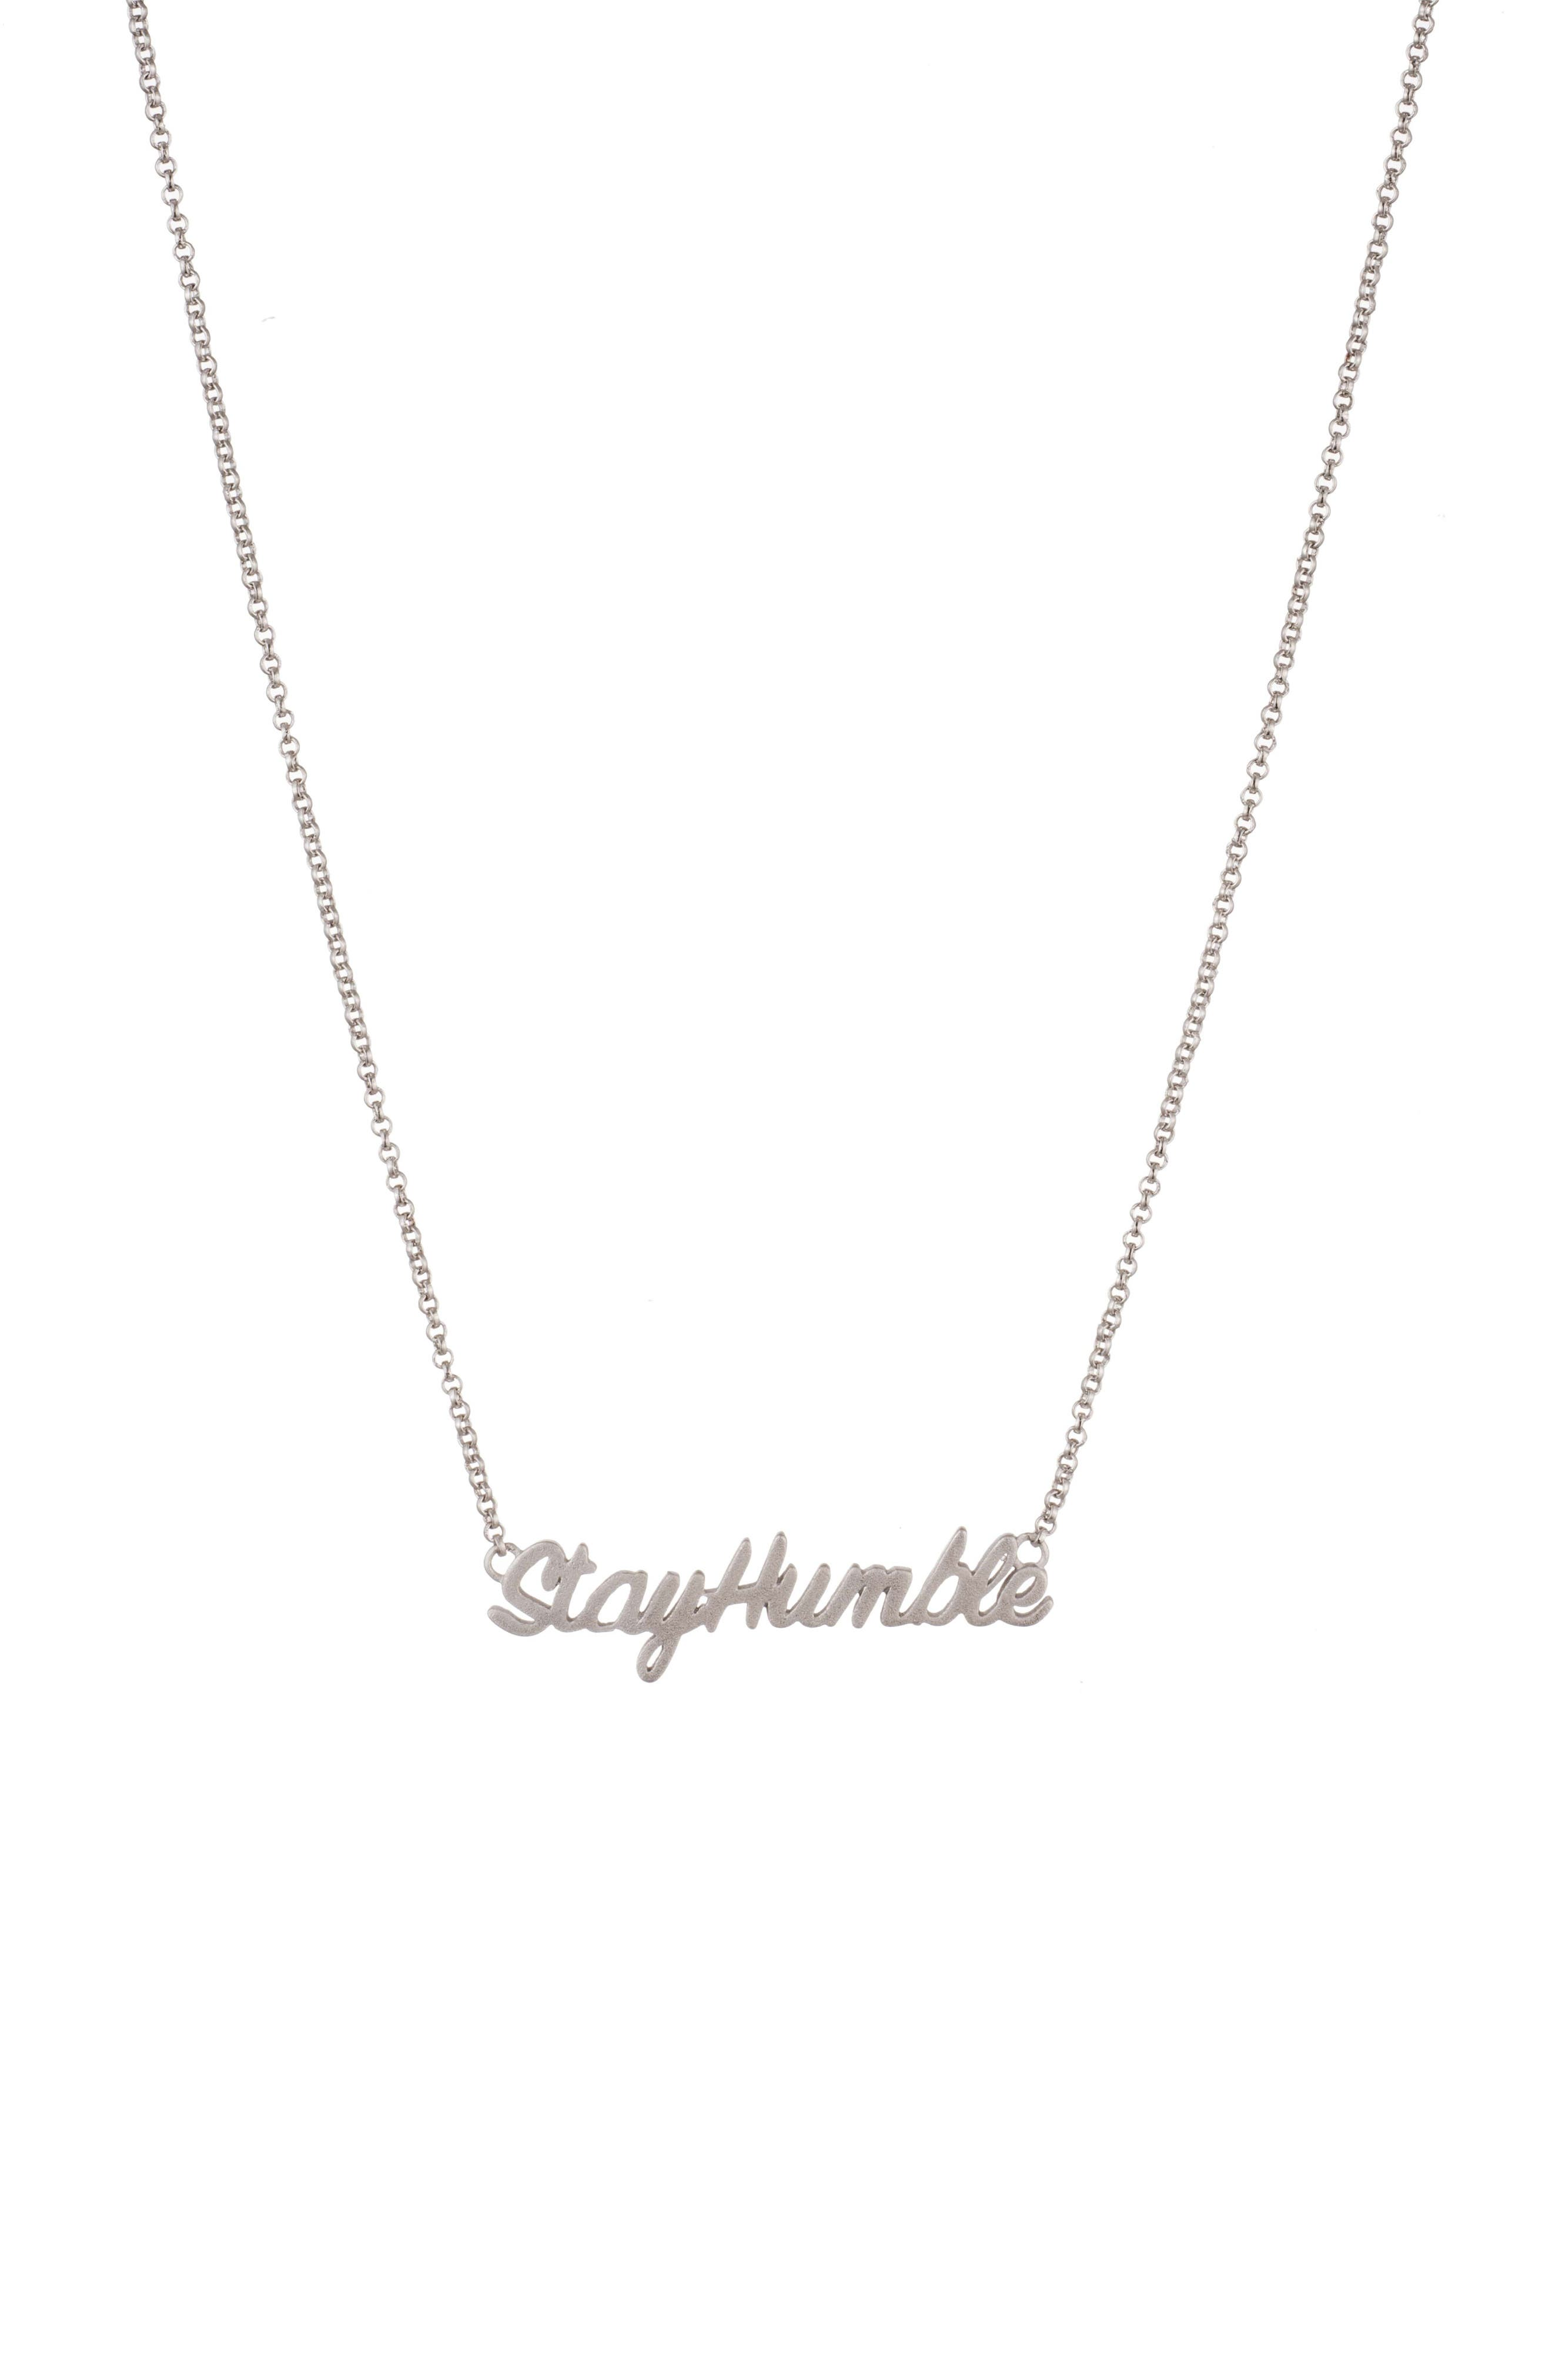 Stay Humble Necklace,                             Main thumbnail 1, color,